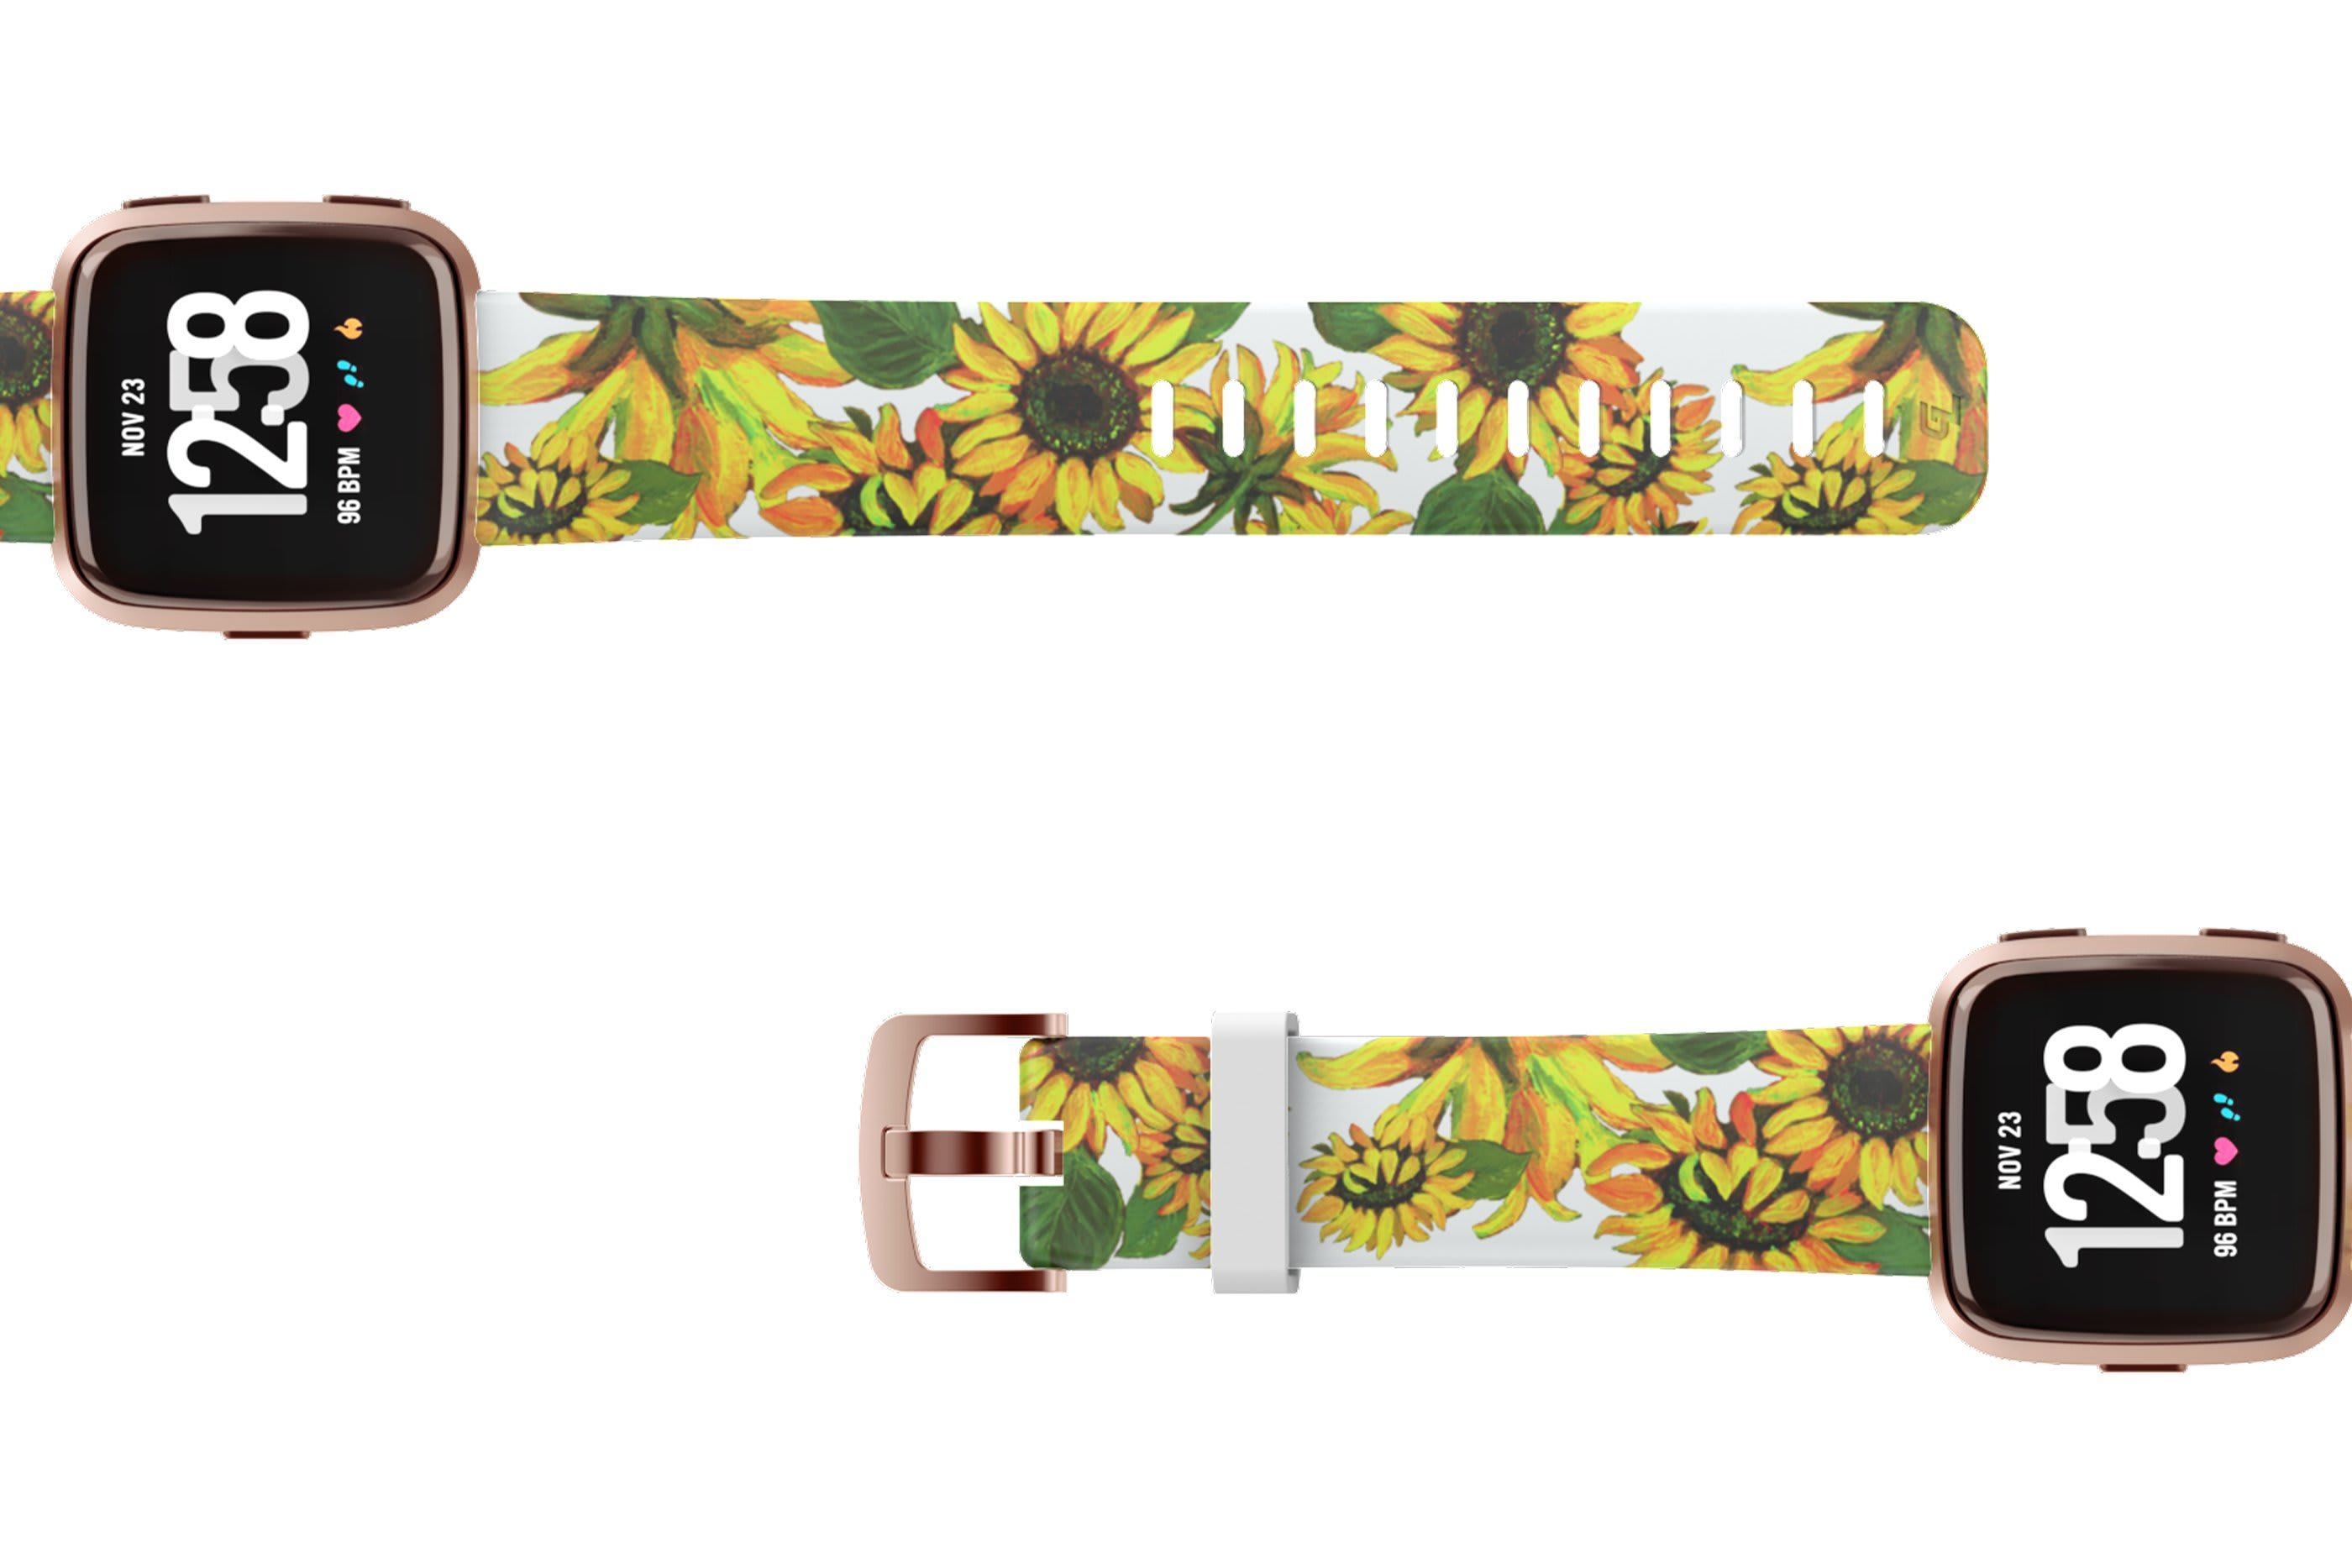 Sunflower Fitbit Versa watch band with rose gold hardware viewed top down